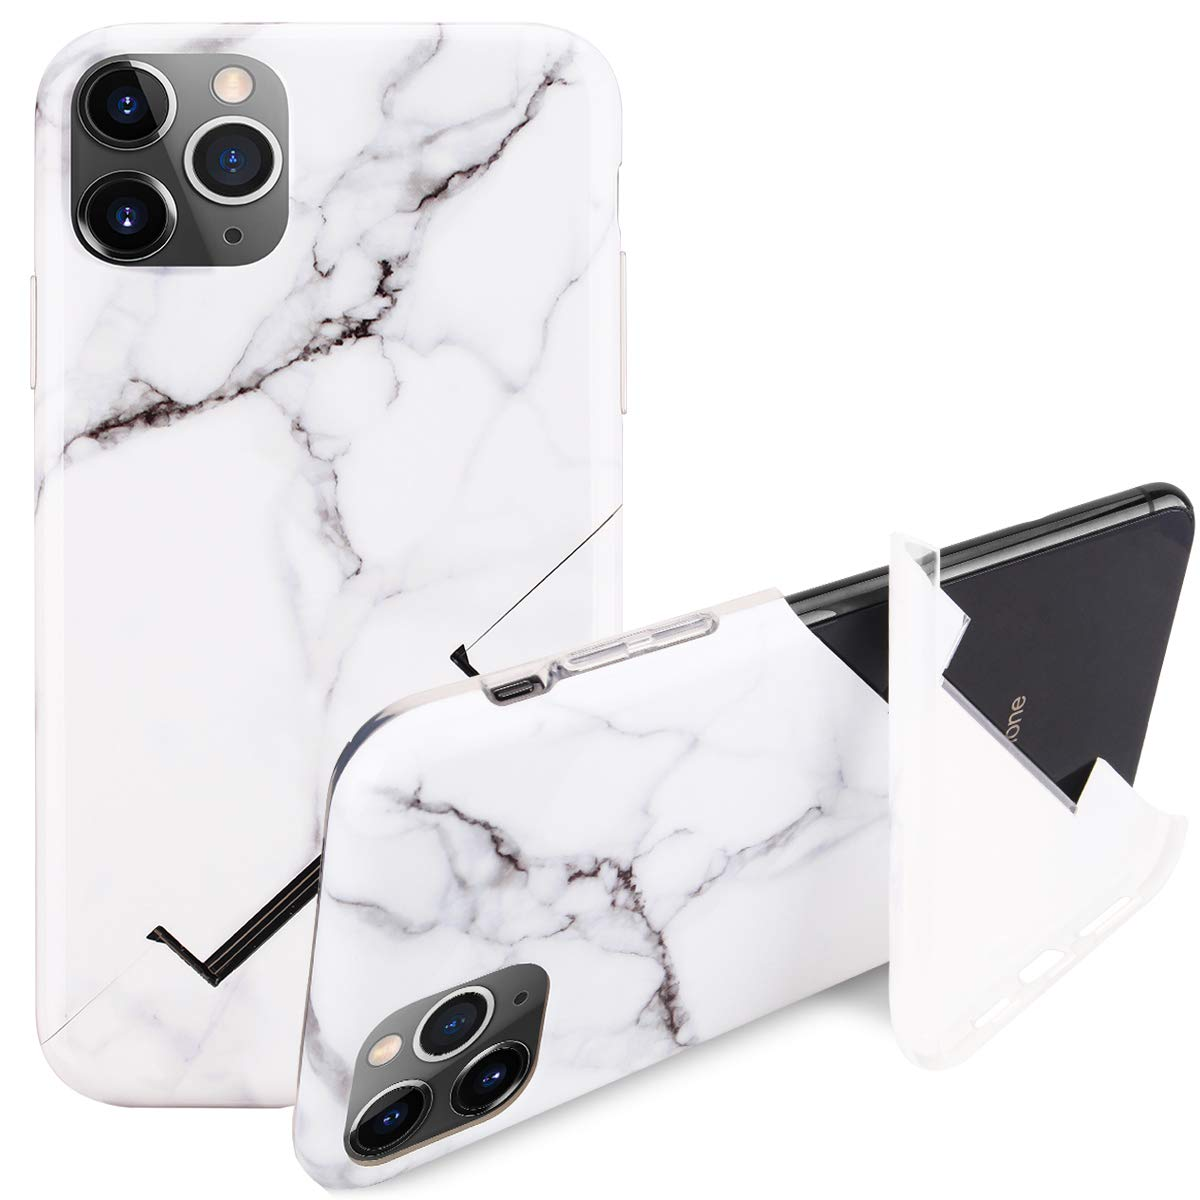 """iPhone 11 Pro Max Kickstand Case, Stylish White Marble iPhone Case for iPhone 11 Pro Max 6.5"""" Foldable Durable Flexible Soft Ultra-Thin Shockproof Slip Resistant TPU Case Cover for Girls Men"""